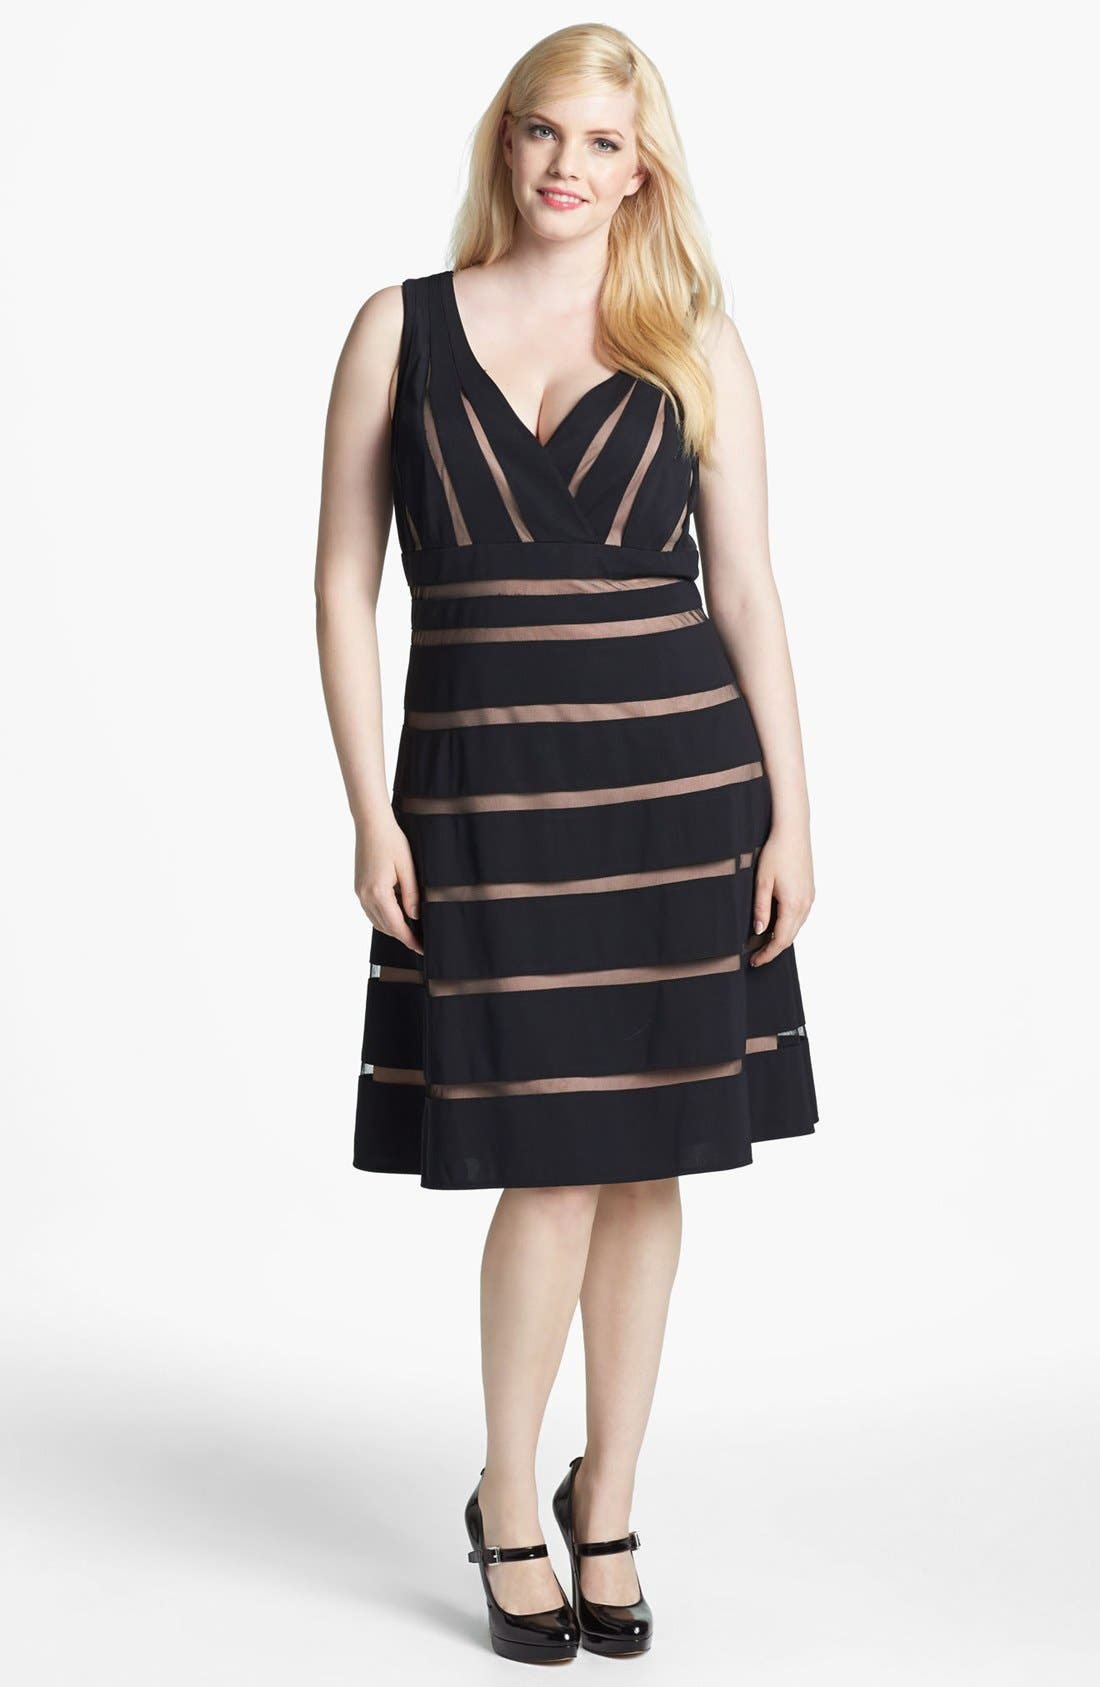 Alternate Image 1 Selected - Xscape Mesh Stripe Fit & Flare Dress (Plus Size)